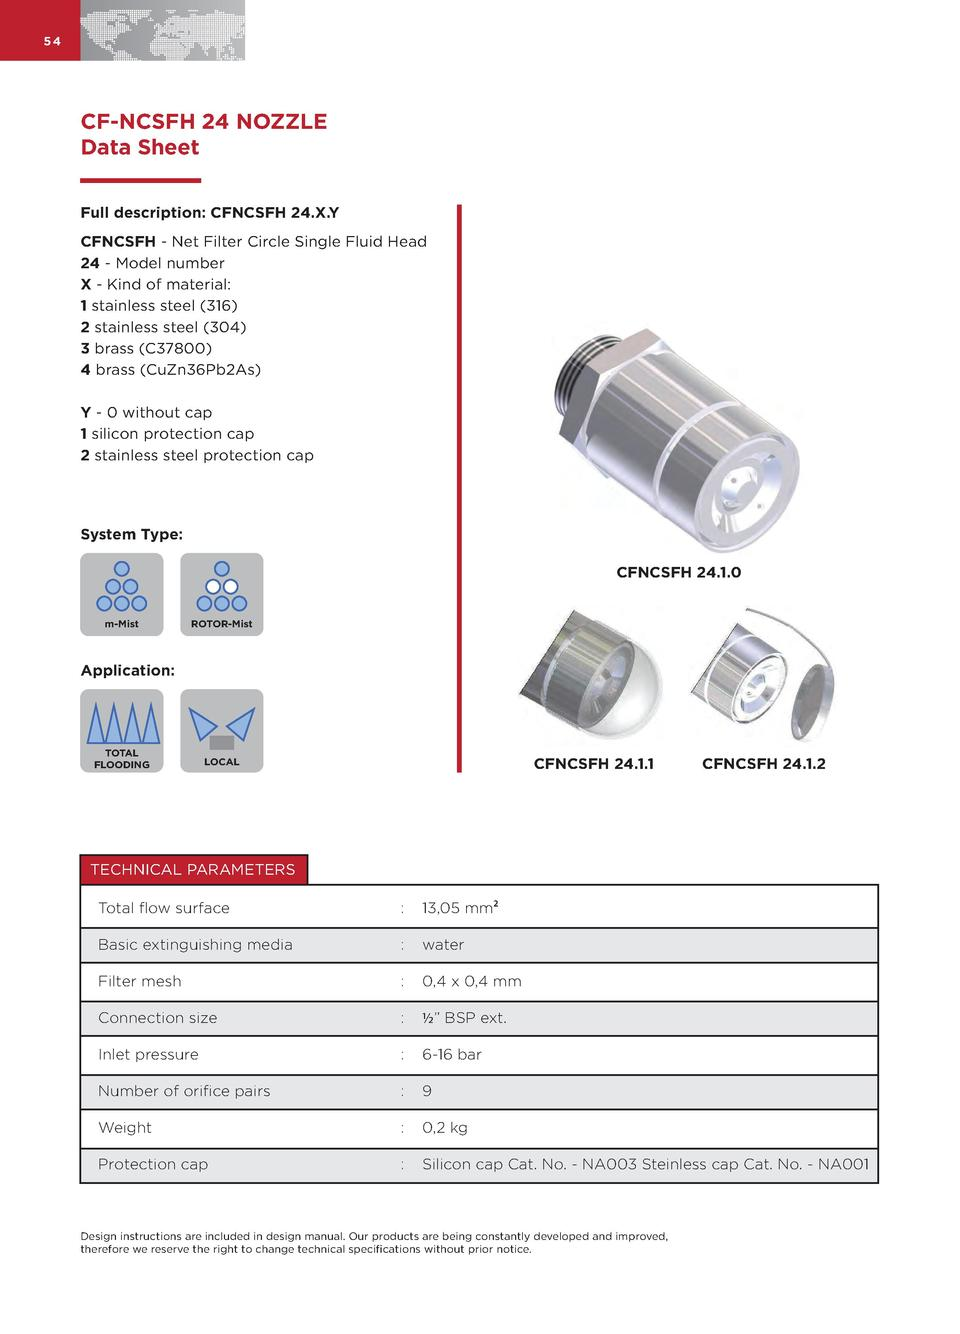 54  CF-NCSFH 24 NOZZLE Data Sheet Full description  CFNCSFH 24.X.Y CFNCSFH - Net Filter Circle Single Fluid Head 24 - Mode...